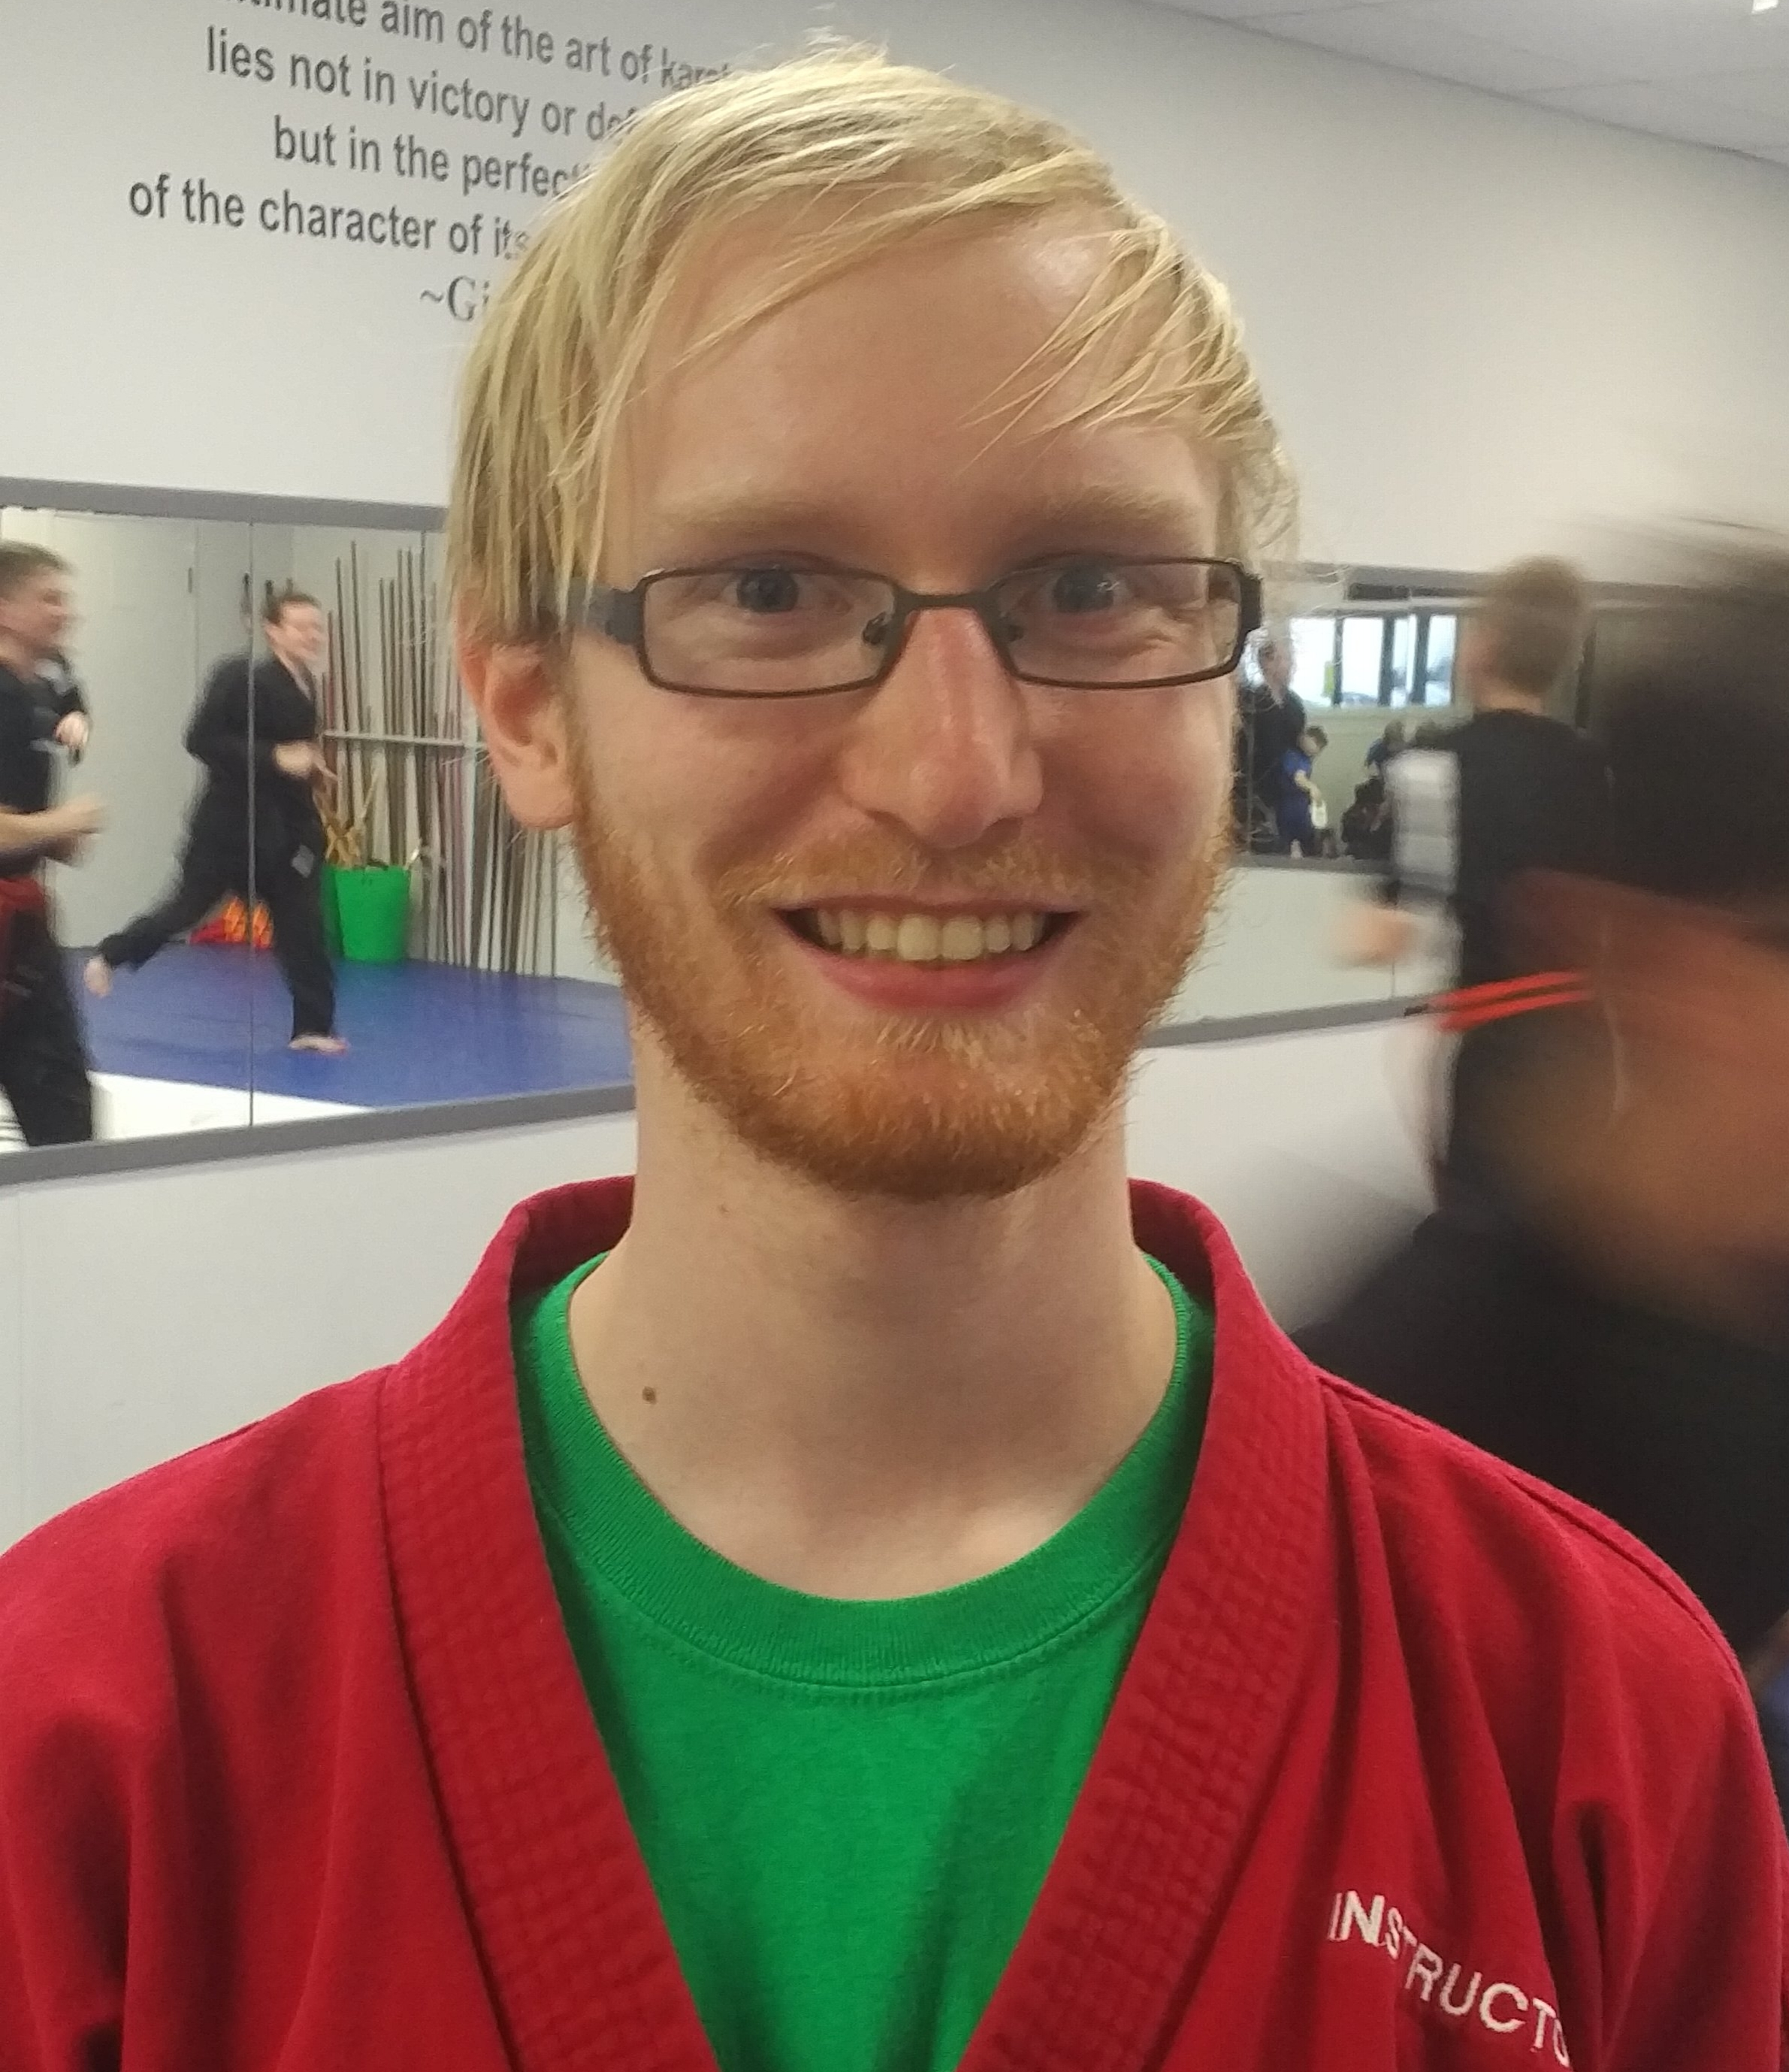 Sensei Scot Bowan  Rank: 4th degree  Been training since birth